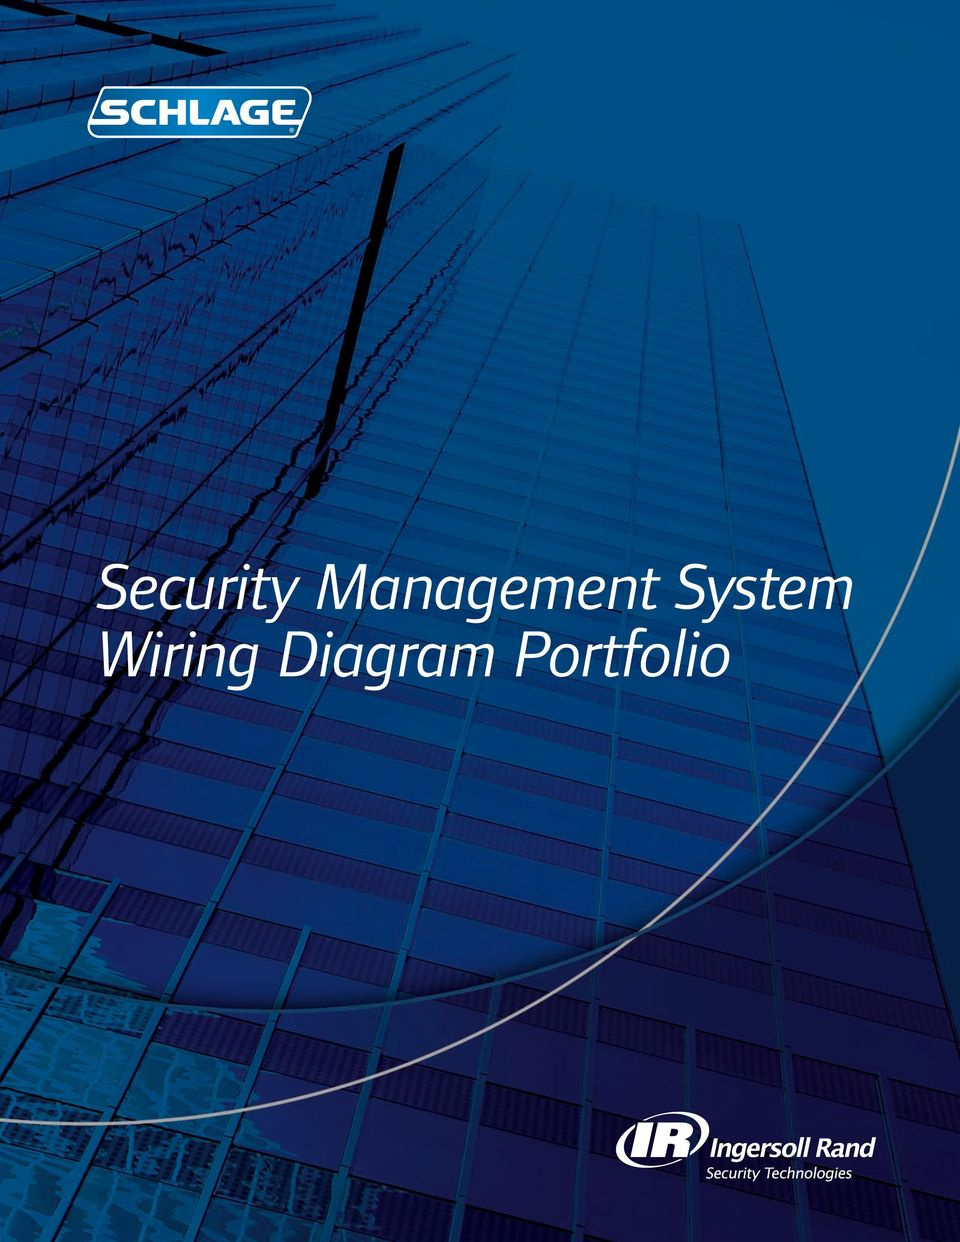 Security Management System Wiring Diagram Portfolio Pdf Ingersoll Rand Schematics 2 Sms Schlage Table Of Contents Section 1 3 4 5 6 Reader Controller